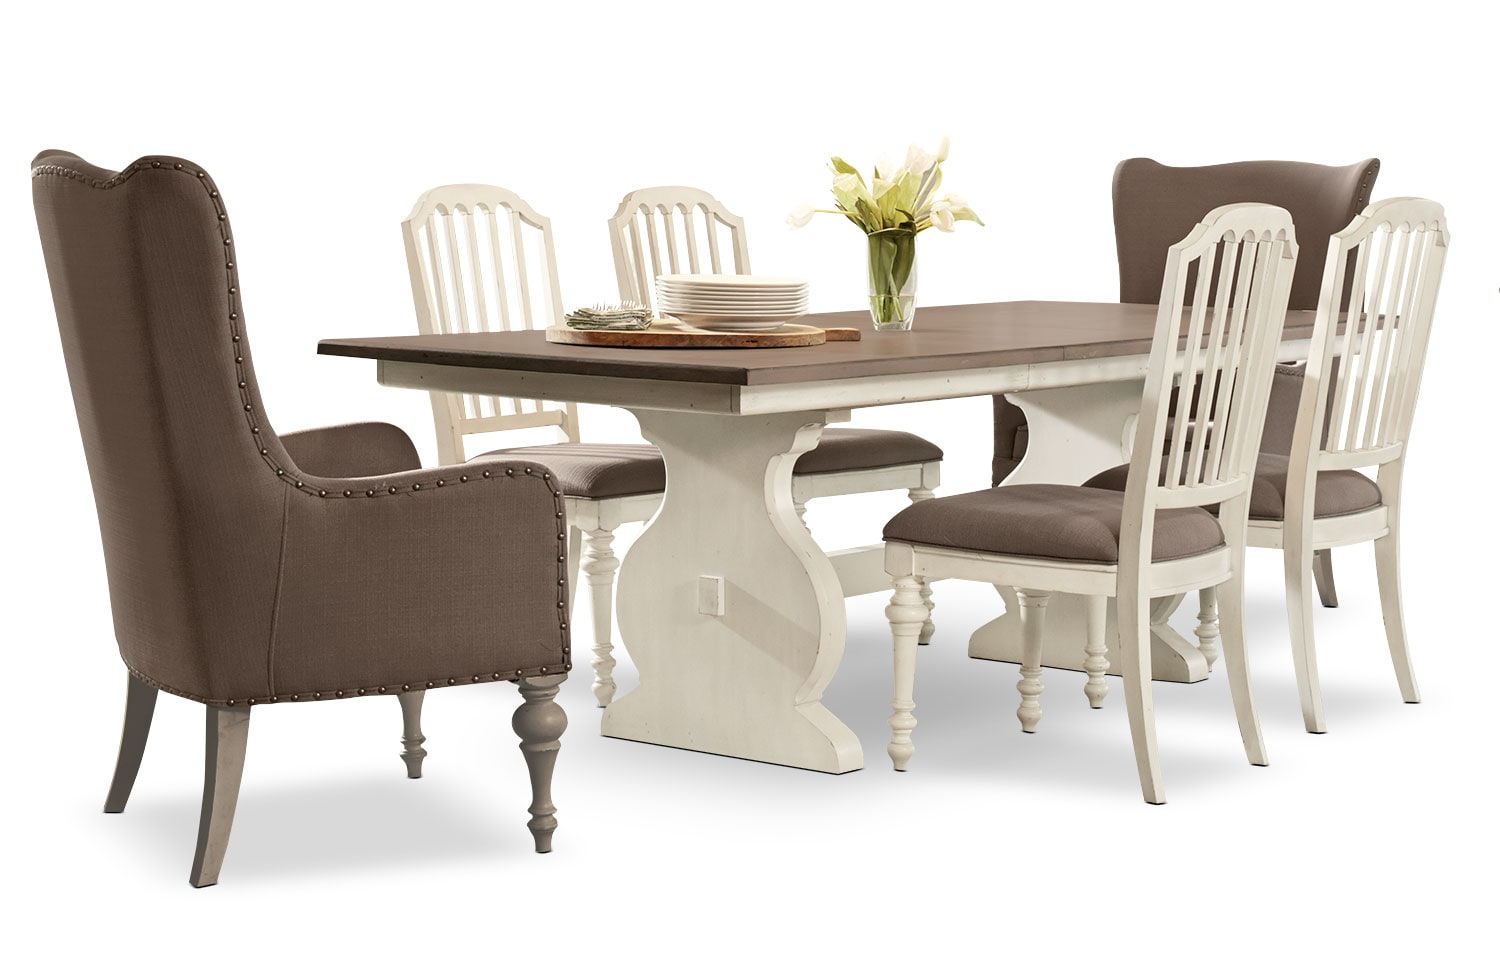 Dining Room Furniture - Hancock Park 7-Piece Dining Package with Arm Chairs